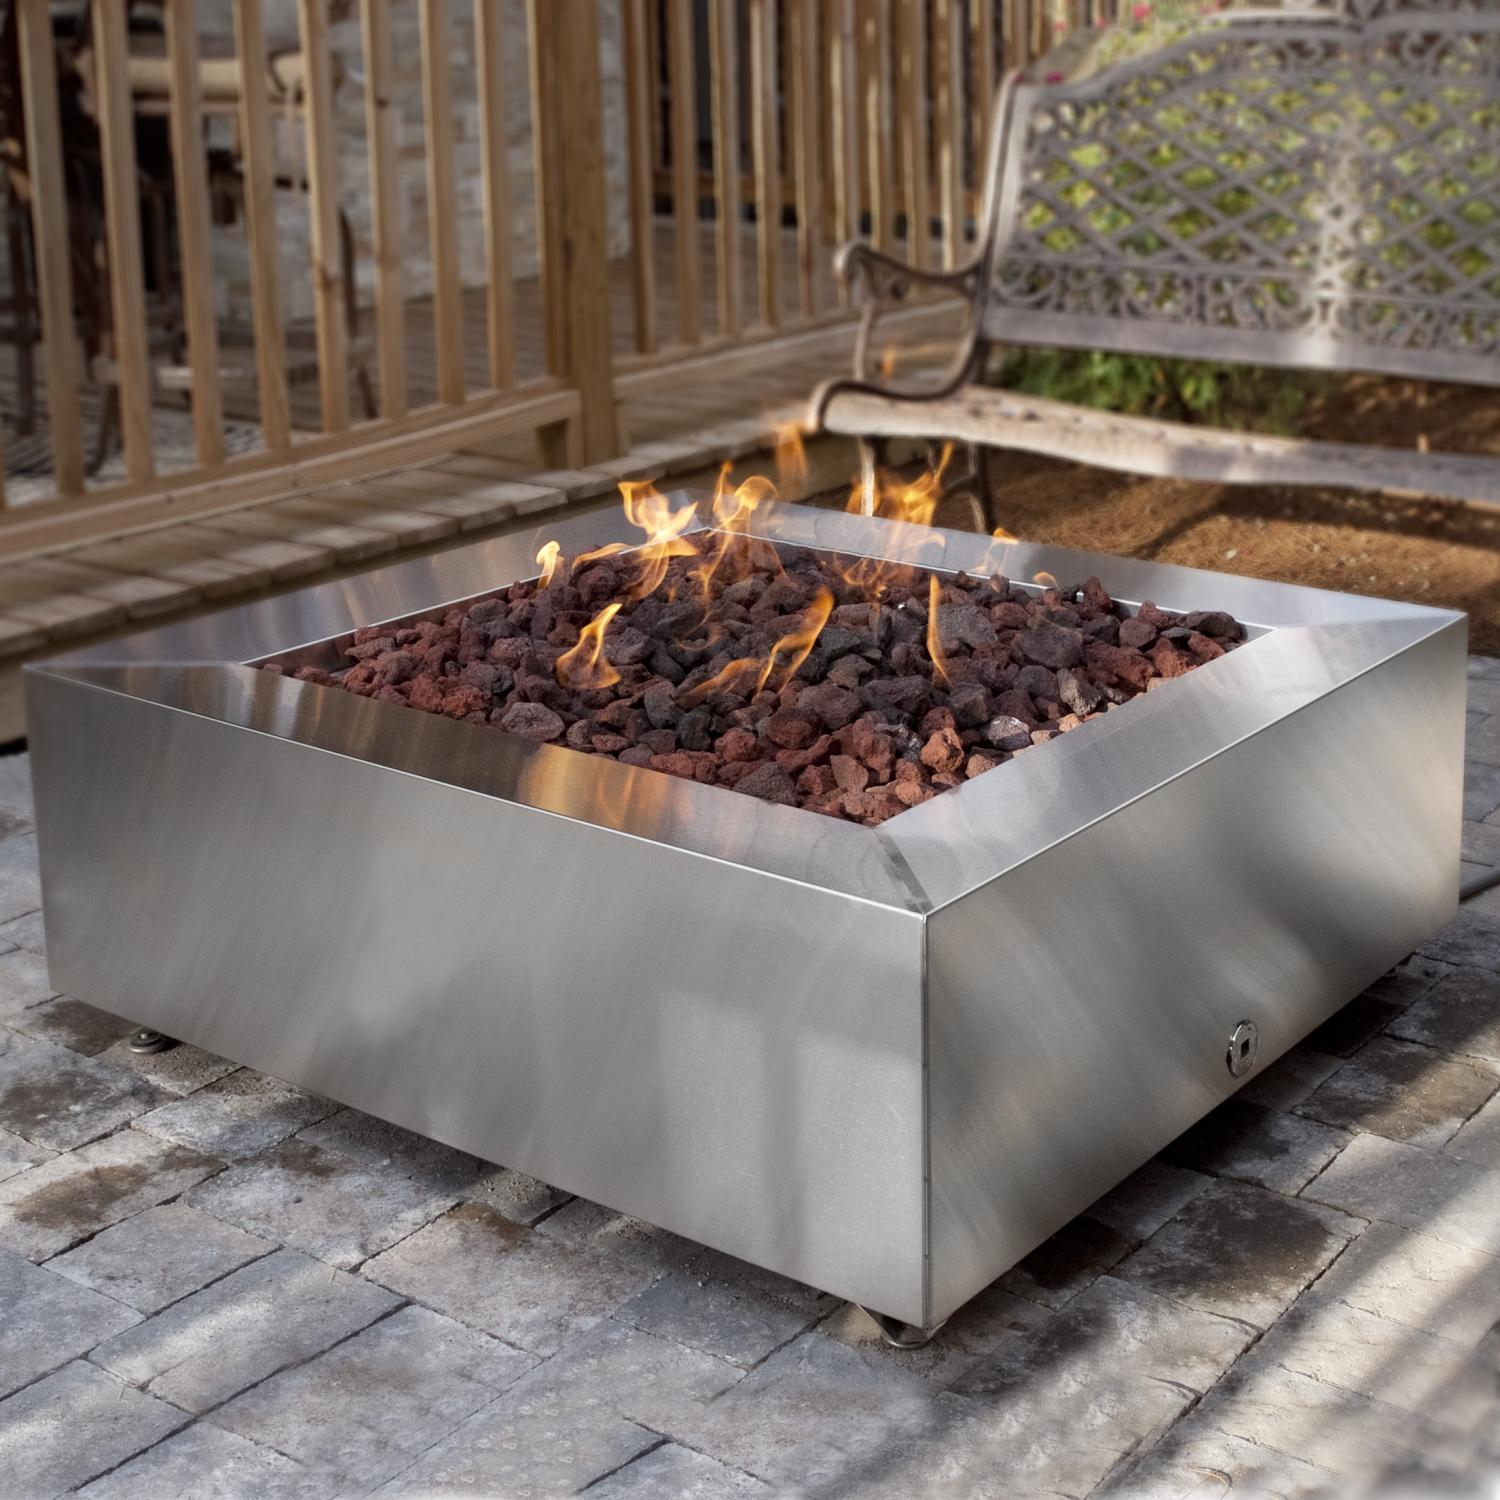 Stainless Steel Fire Pit Ideas Outdoor Decorations pertaining to proportions 1500 X 1500